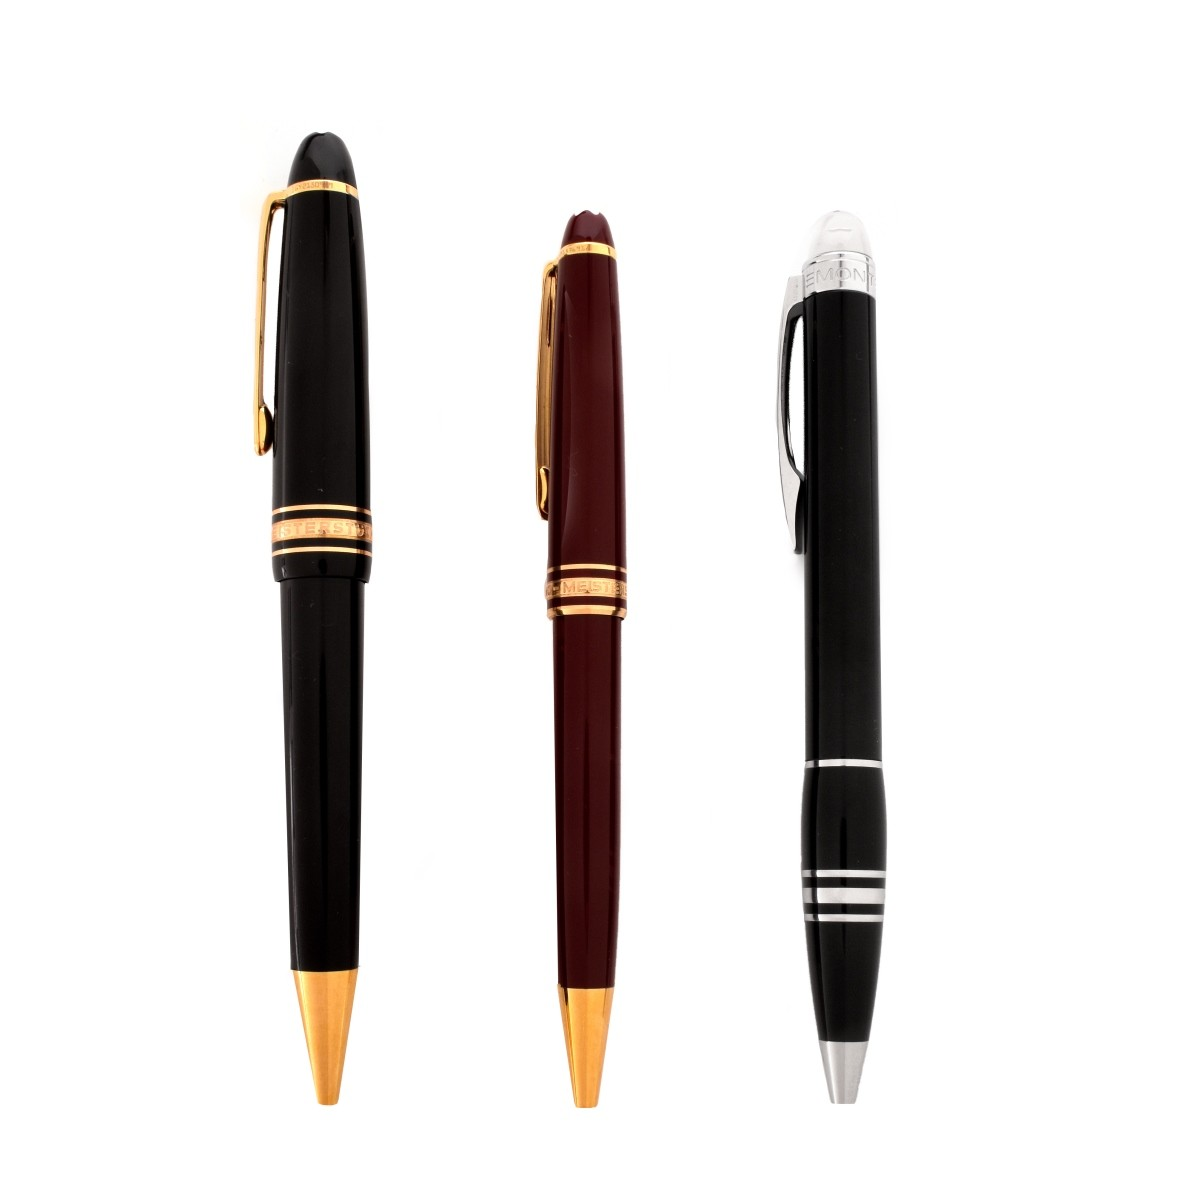 3 MontBlanc Rollerball Pens